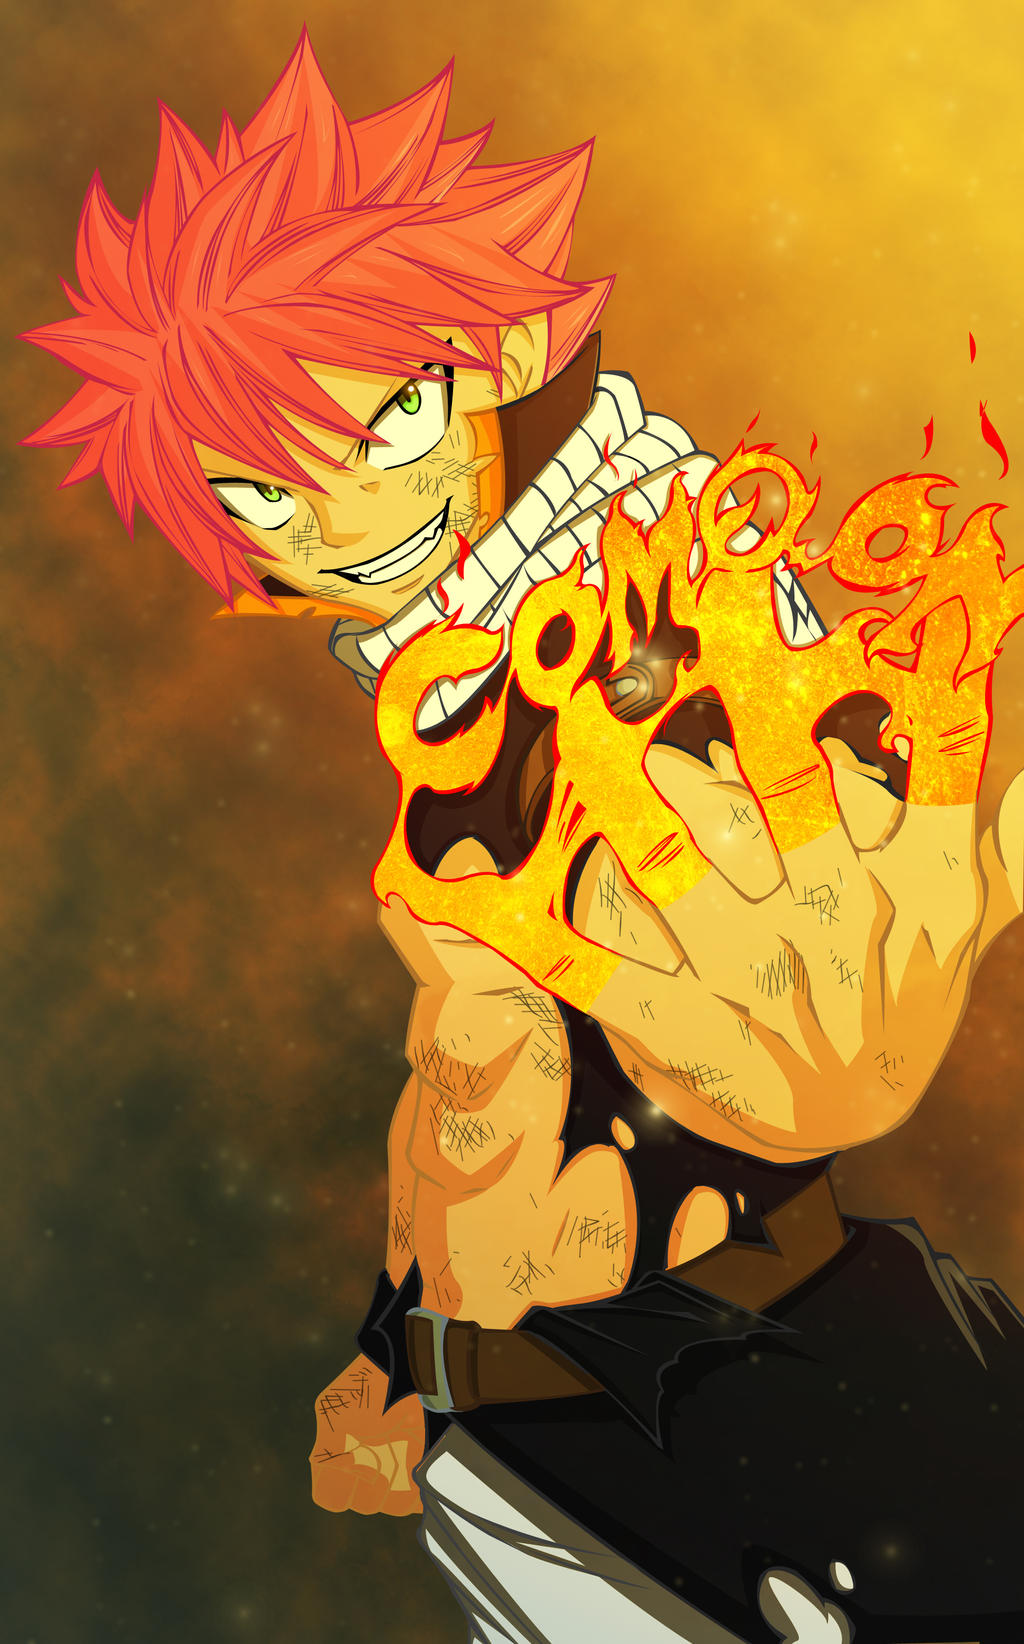 Natsu Dragneel: Come On by fullmetaljuzz